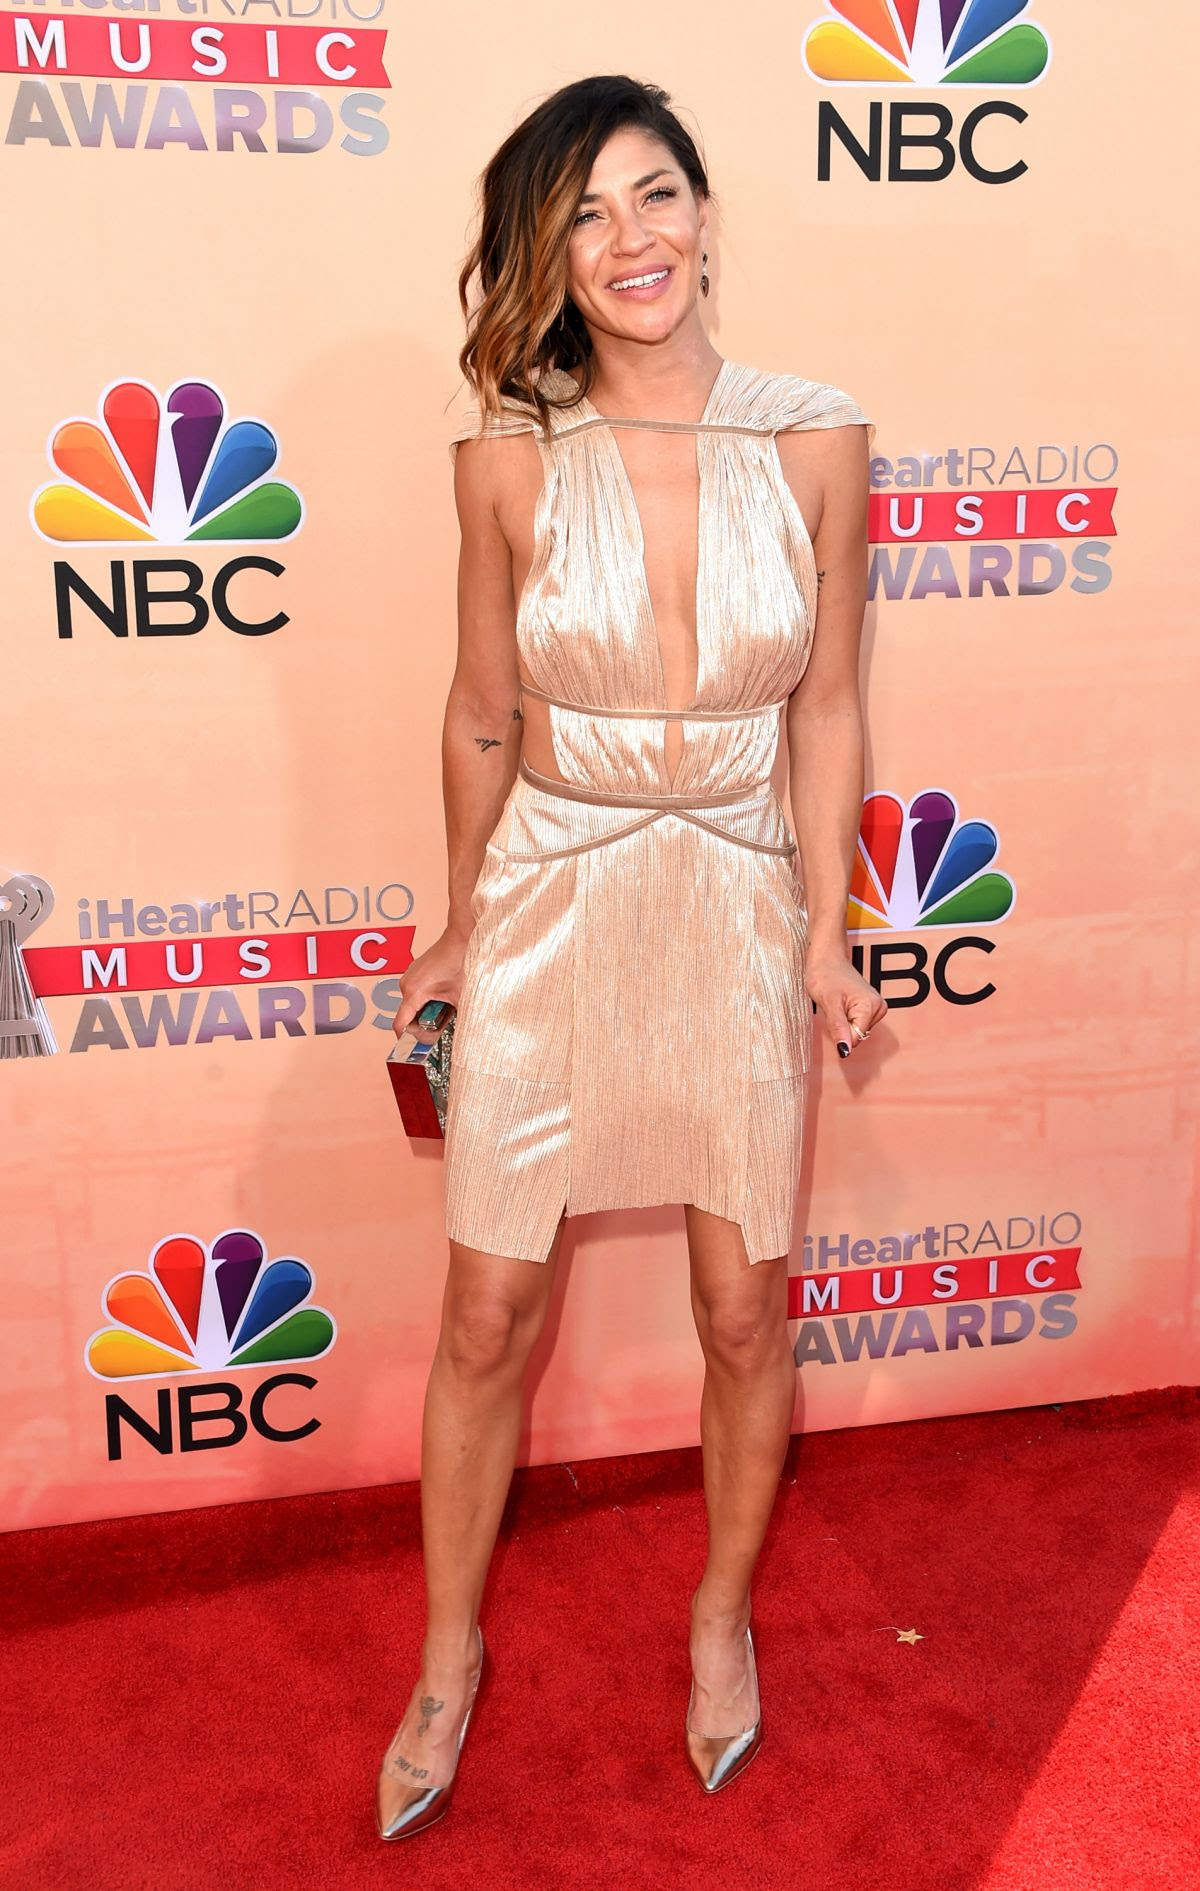 JESSICA SZOHR at 2015 iHeartRadio Music Awards in Los Angeles